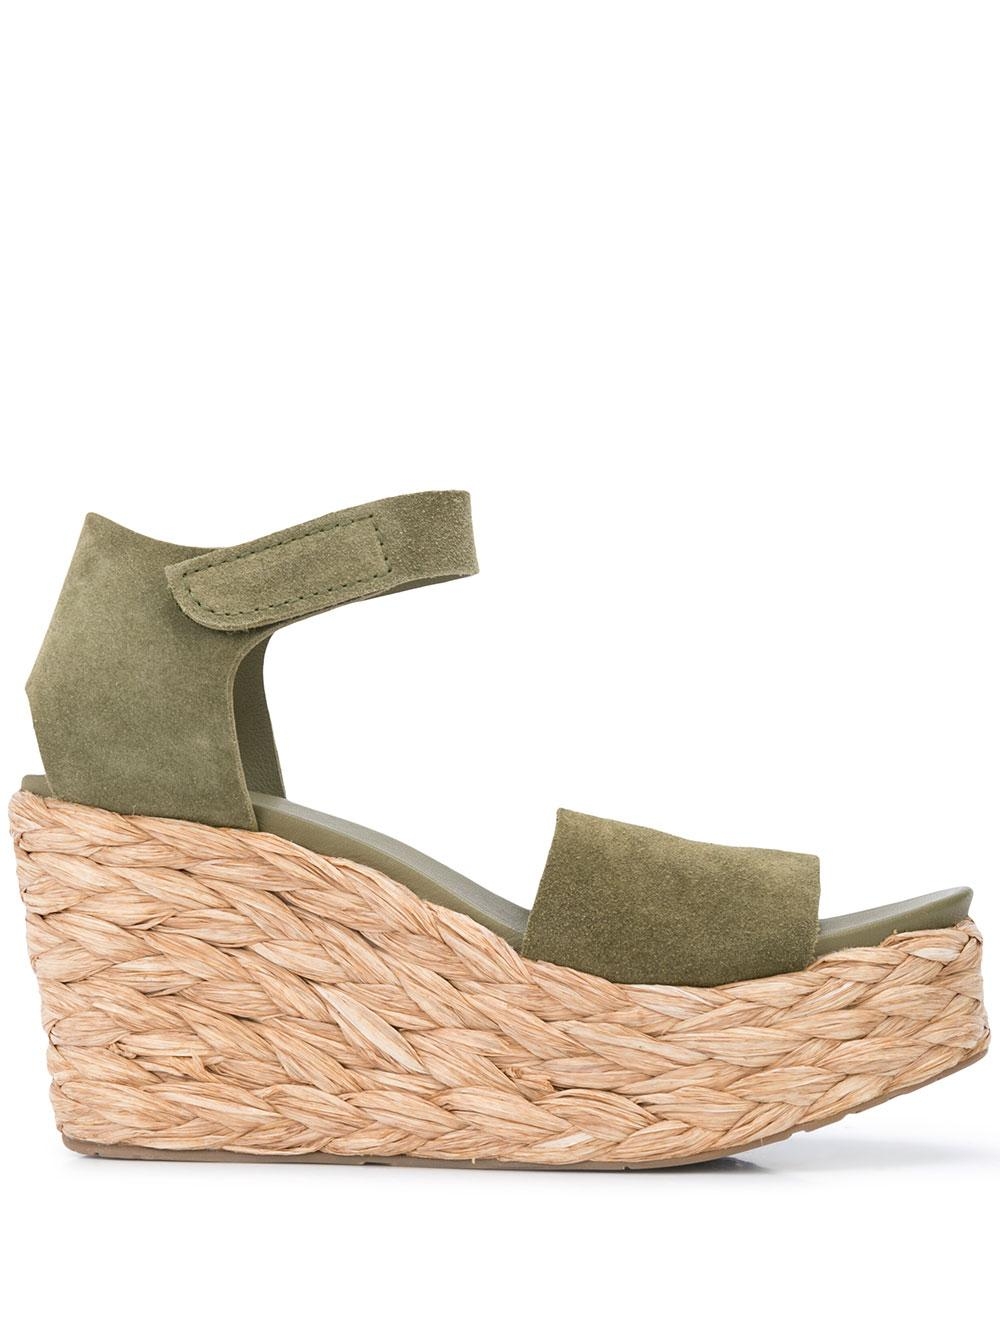 Wedge Espadrille Platform Sandal With Velcro Item # DORY-RA